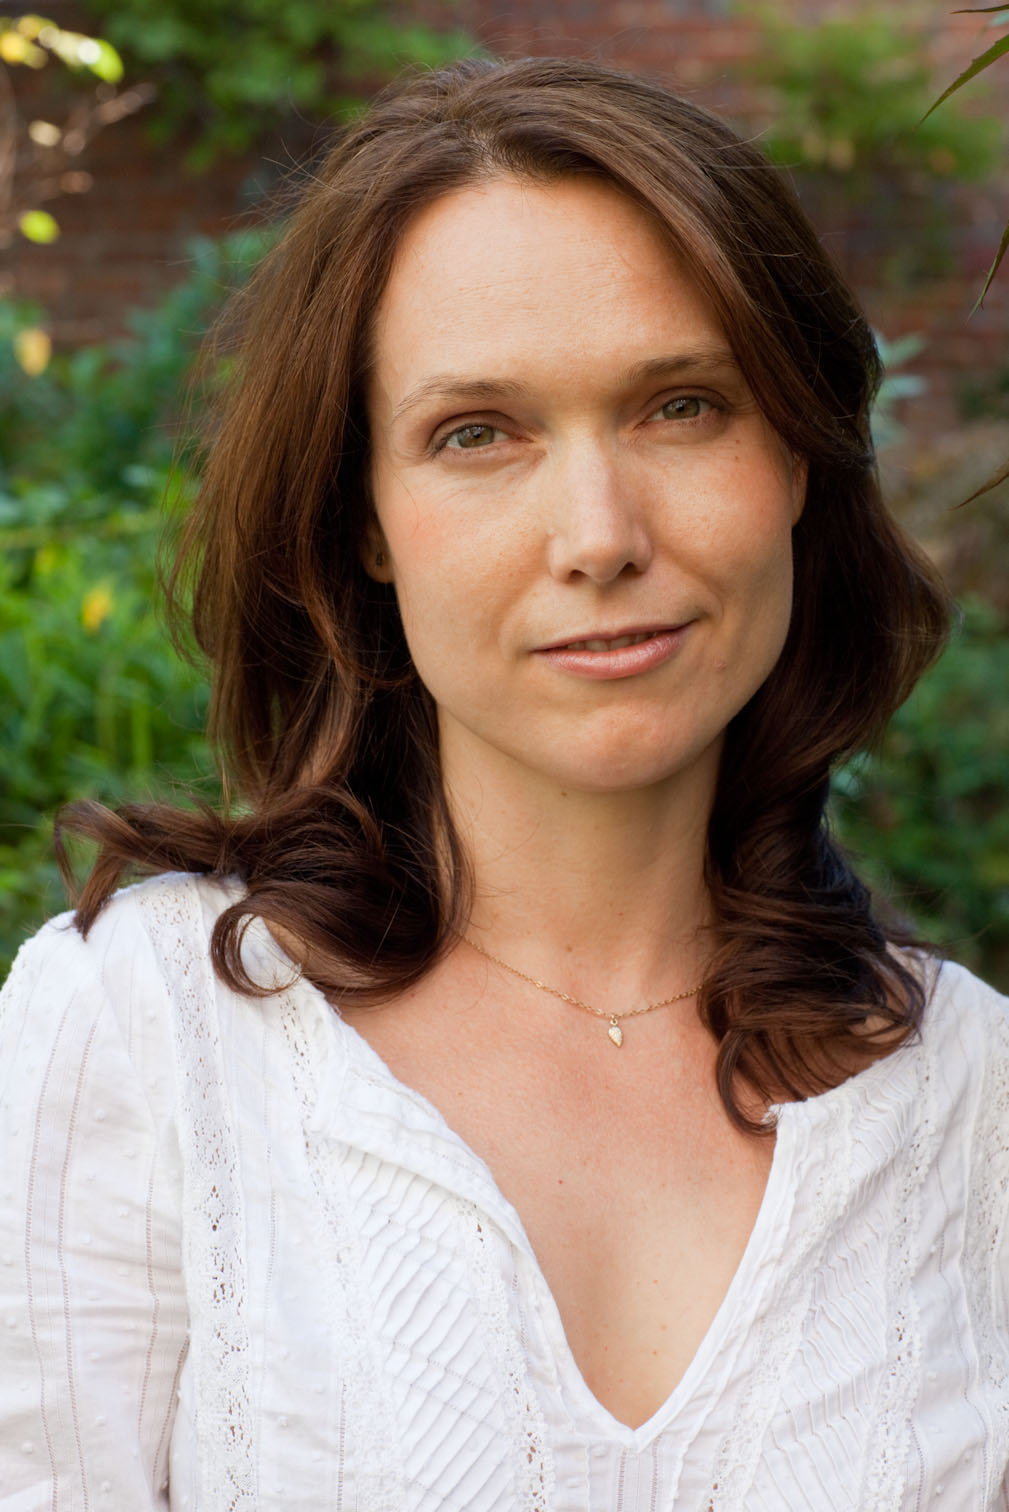 Samantha Story is an Acupuncturist and Breathwork Healer working in NYC and cofounder of Ritual Moon.